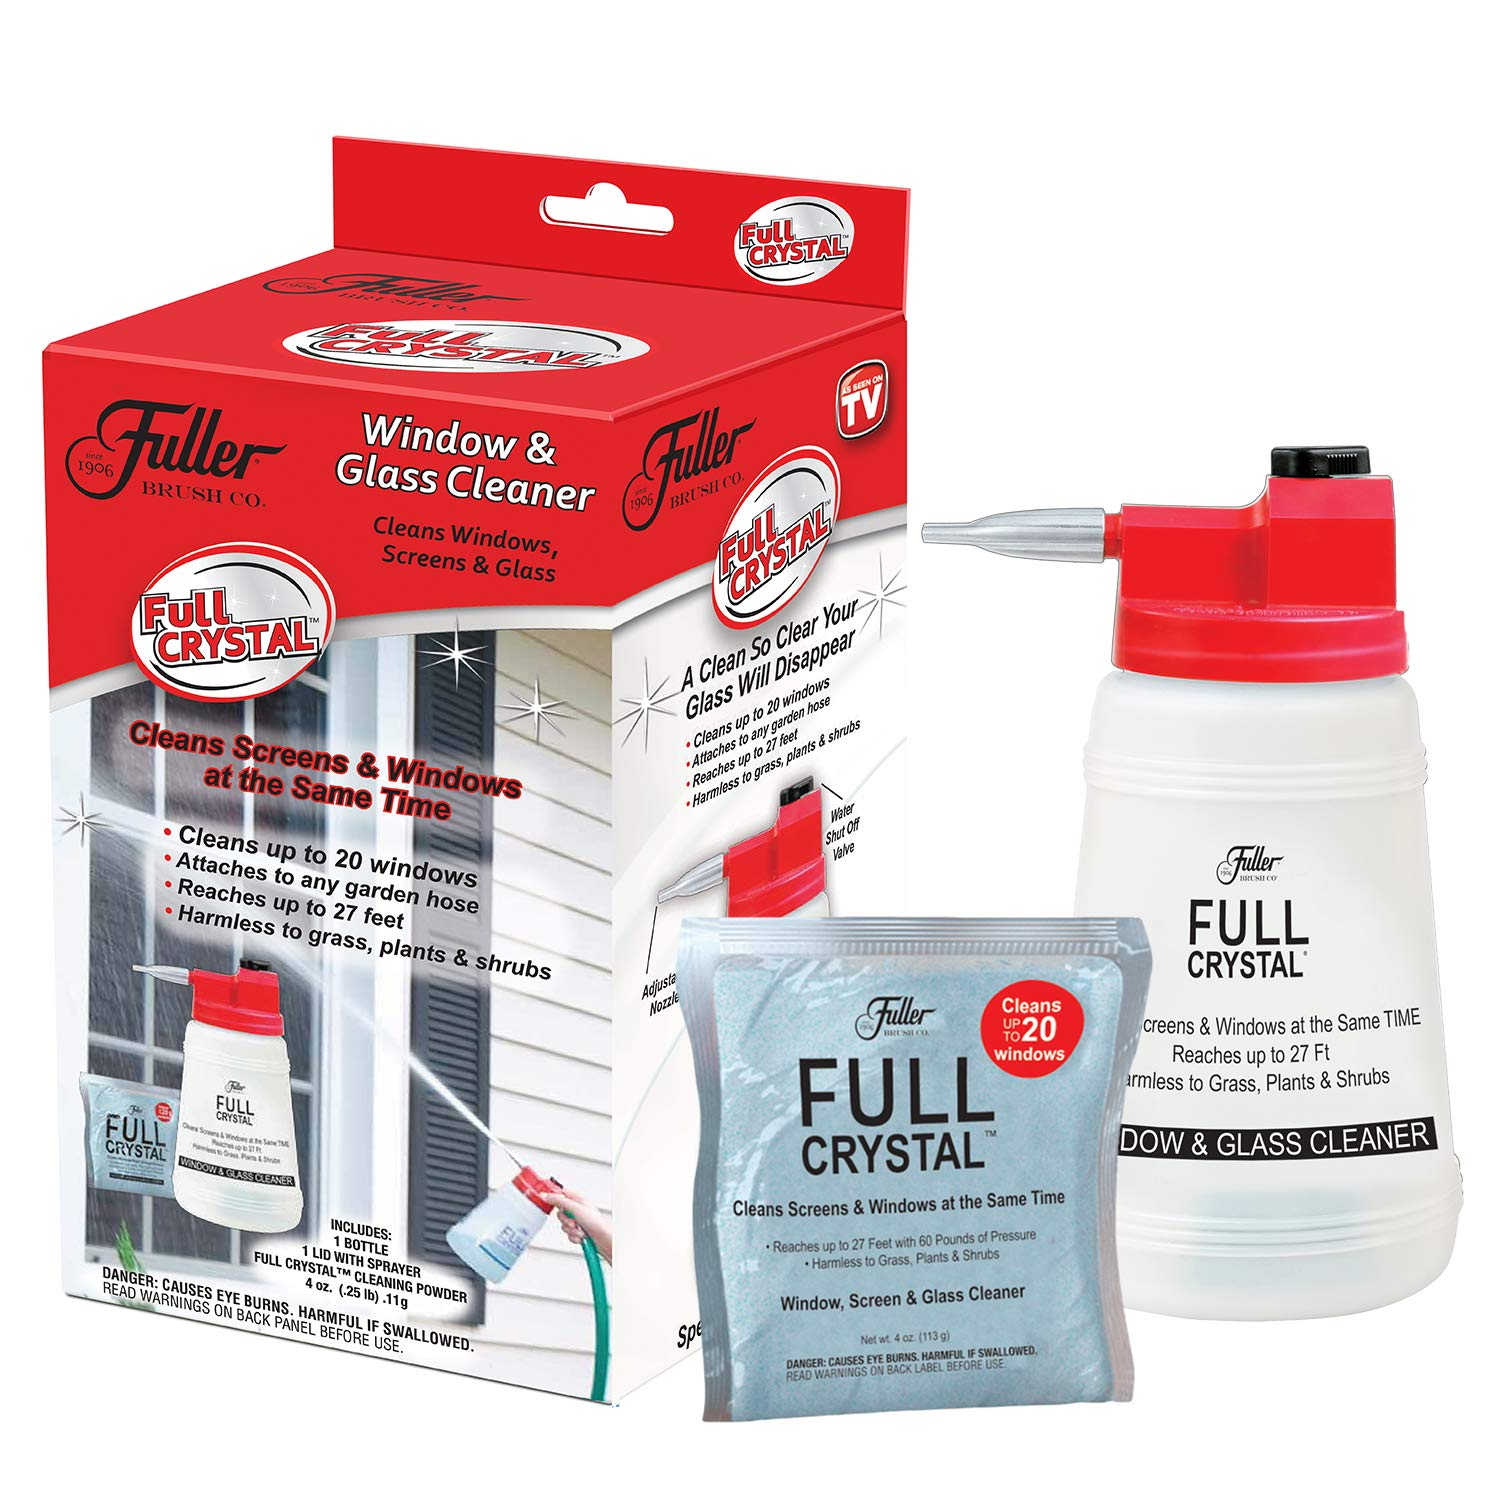 Full Crystal Kit - Bottle, Lid with Hose Attachment, and 4 oz. Crystal Powder Exterior Window Cleaner Packet for Glass and Screens (Cleans Up To 20 Windows)